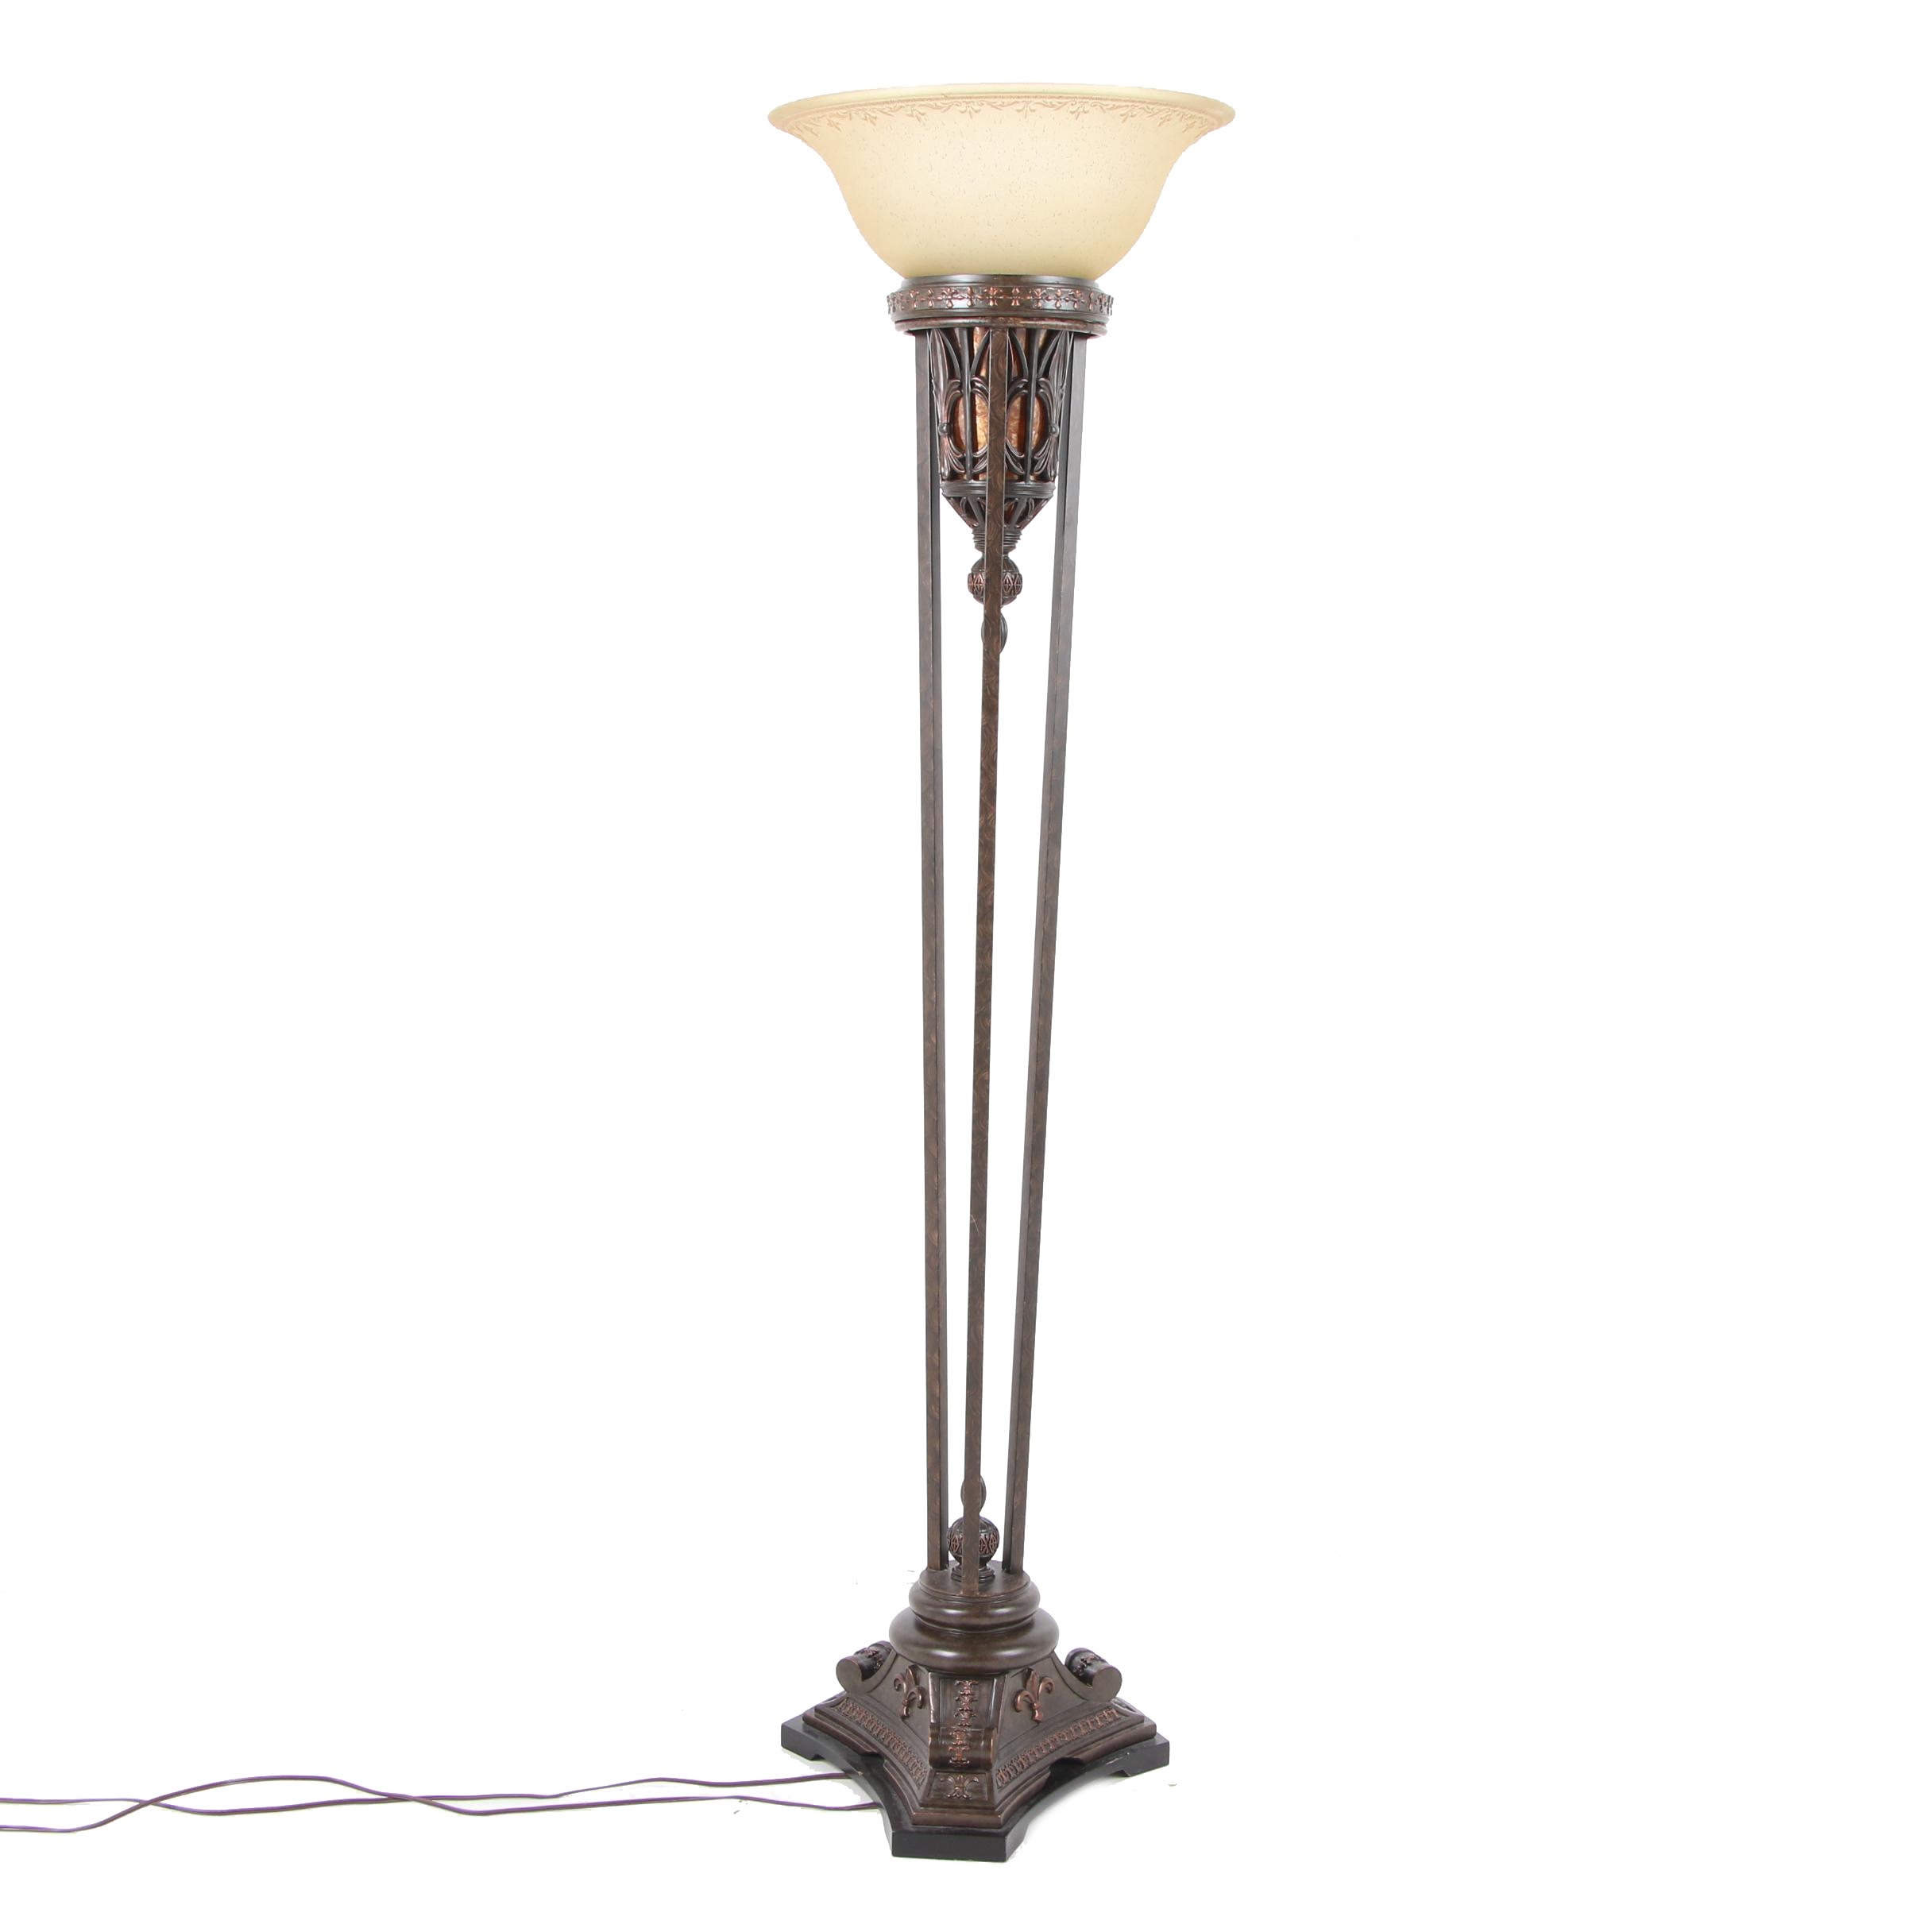 Neoclassical Style Torchiere Floor Lamp